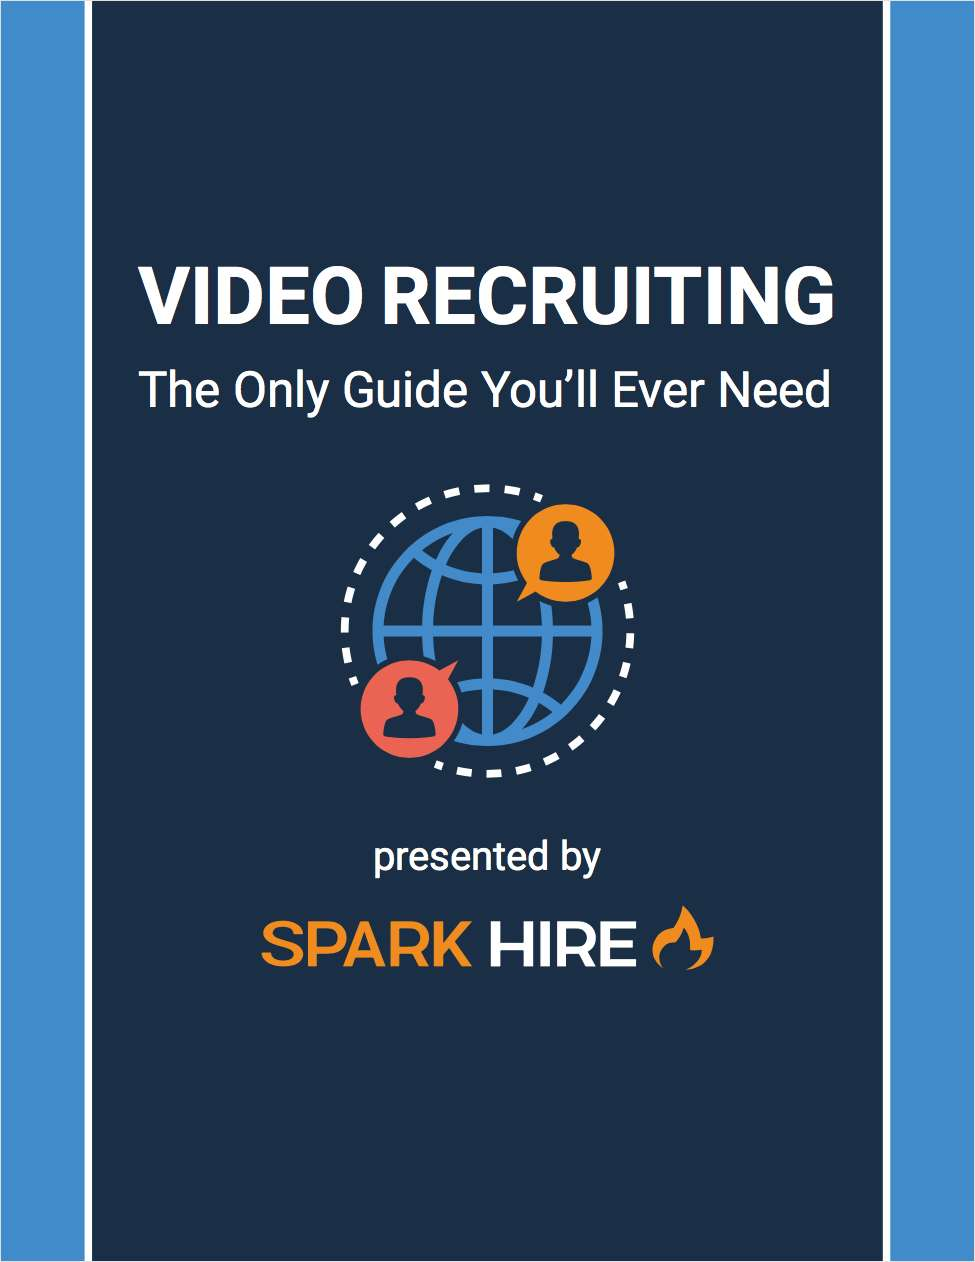 Video Recruiting eBook: The Only Guide You'll Ever Need